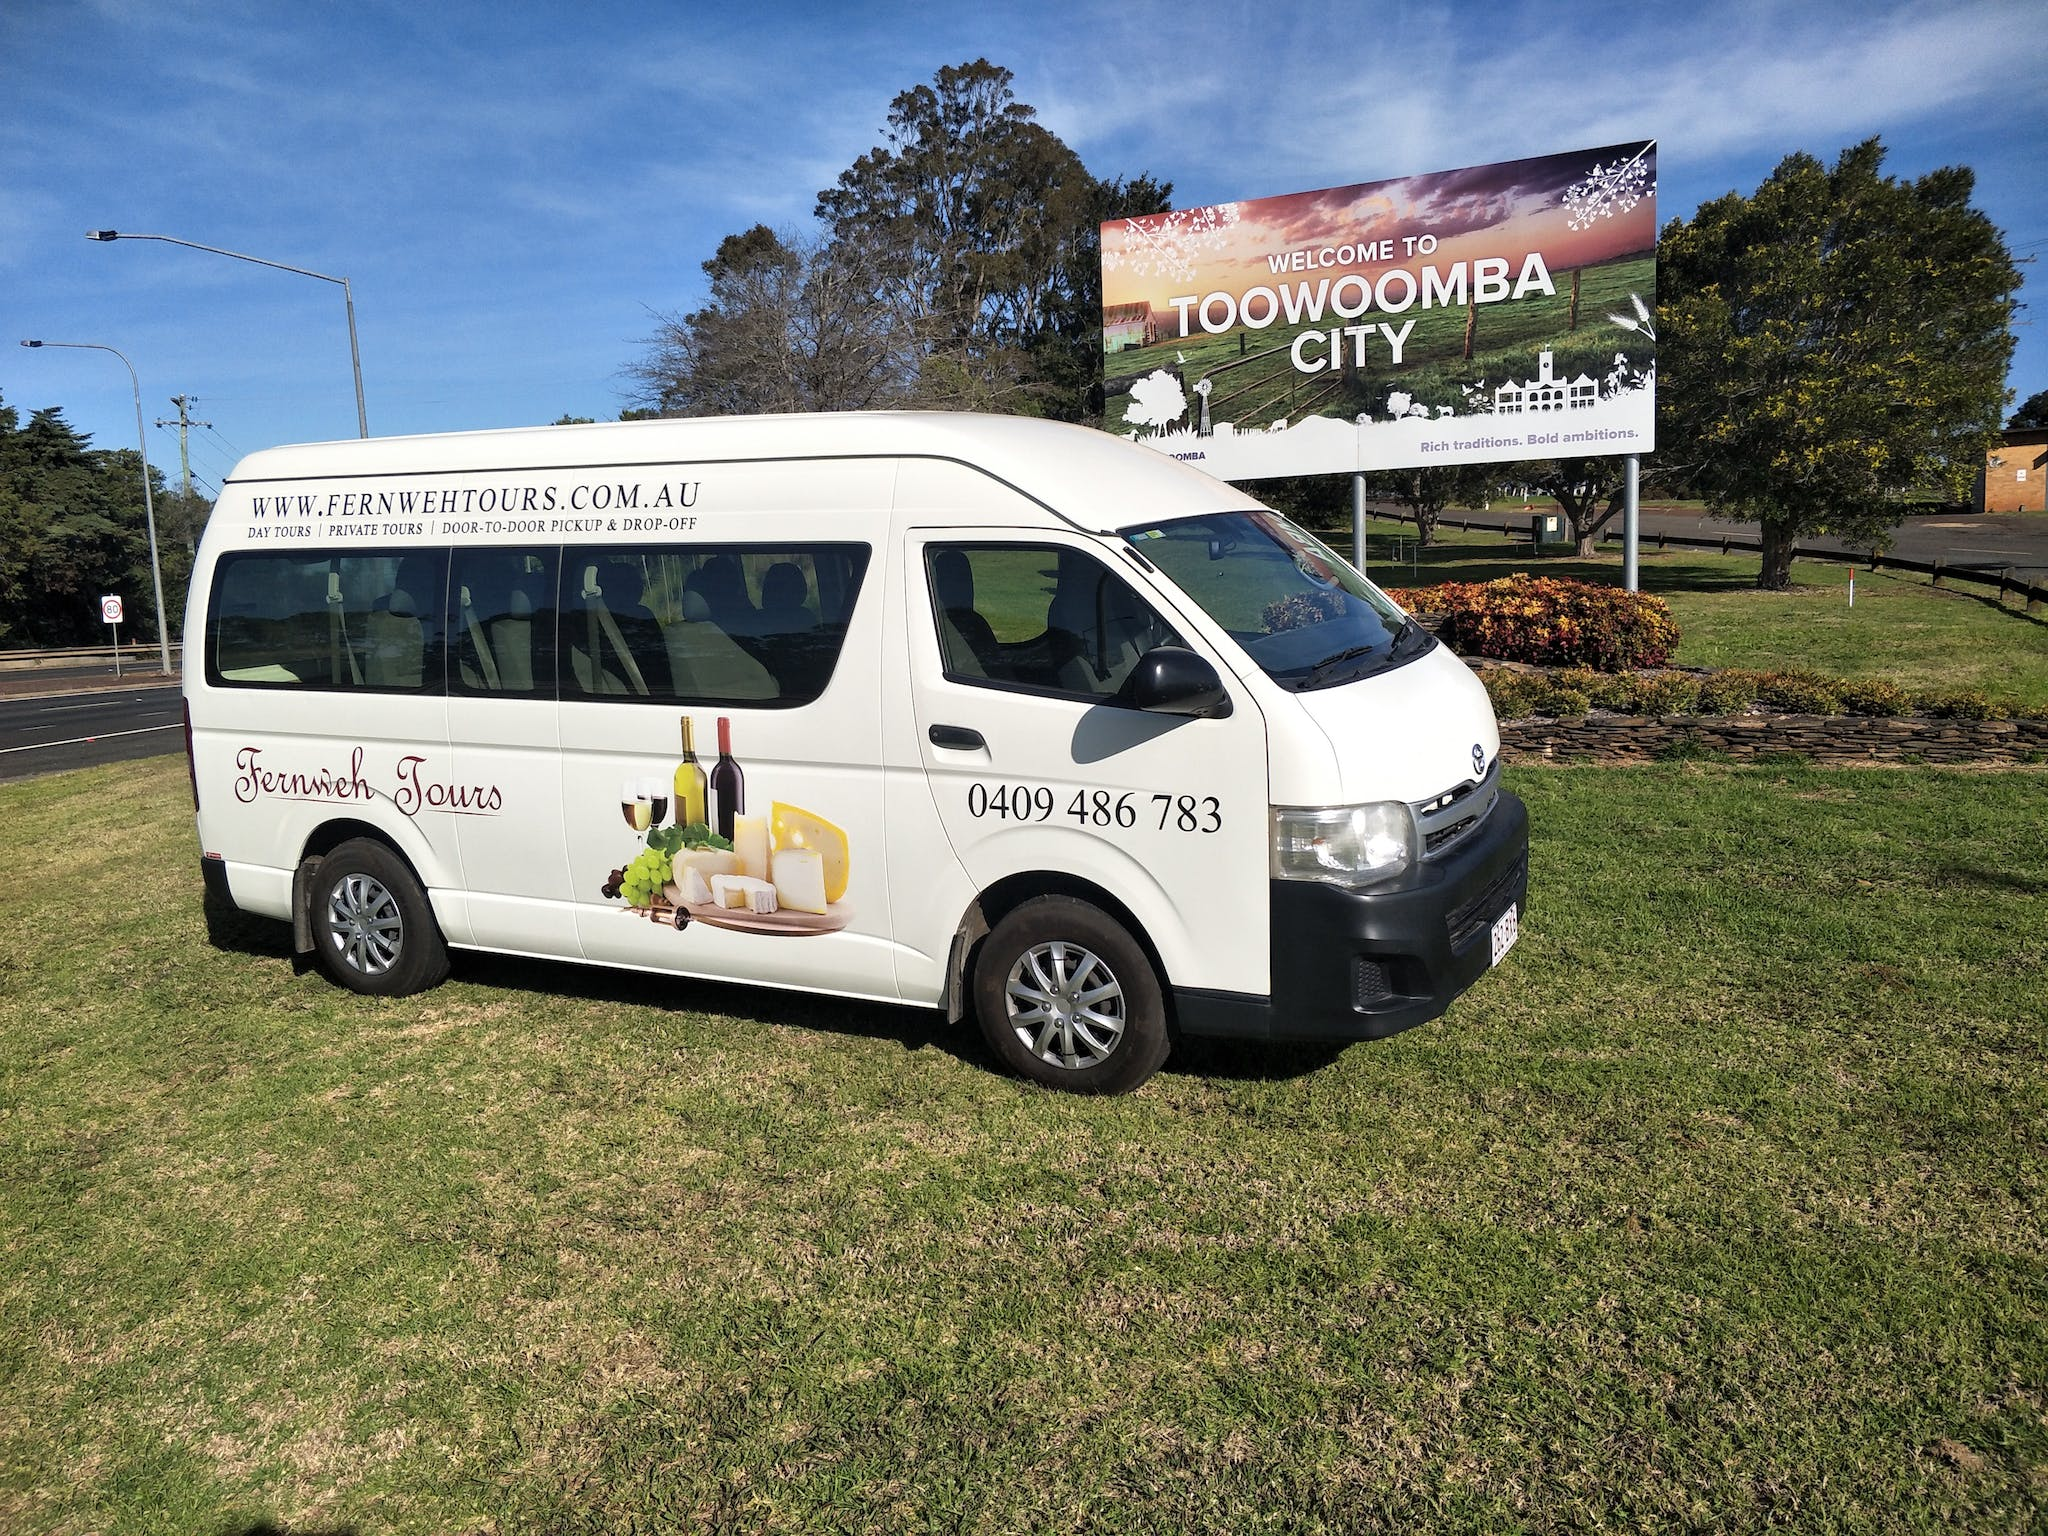 Fernweh Tours Toowoomba offer  boutique group tours in Toowoomba. Tour itineraries are negotiable.